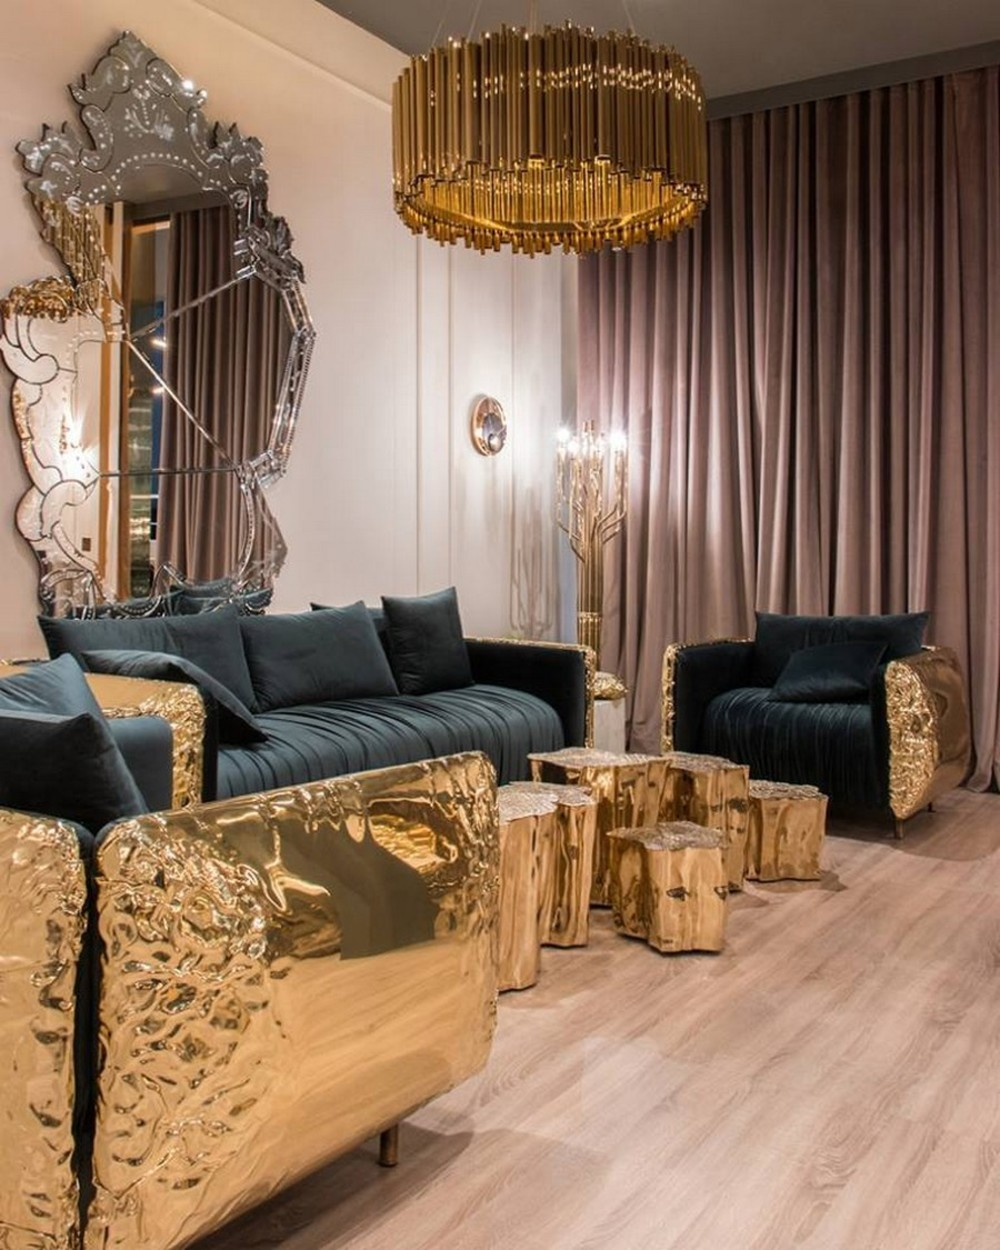 icff 2019 Be sure to not miss these luxury furniture brands at ICFF 2019 Covet House1